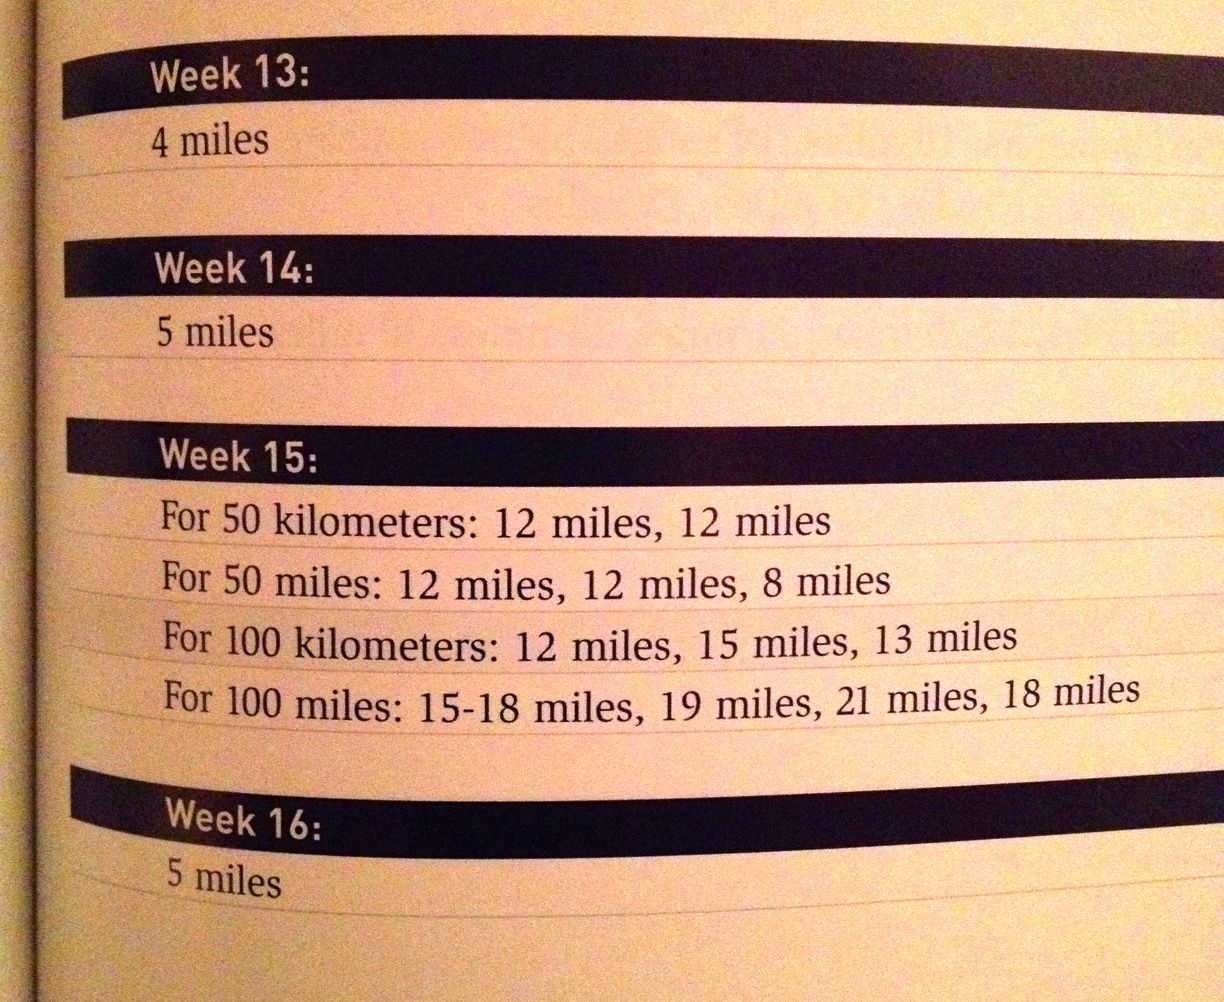 Page 127 of Galloway's Trail Running book